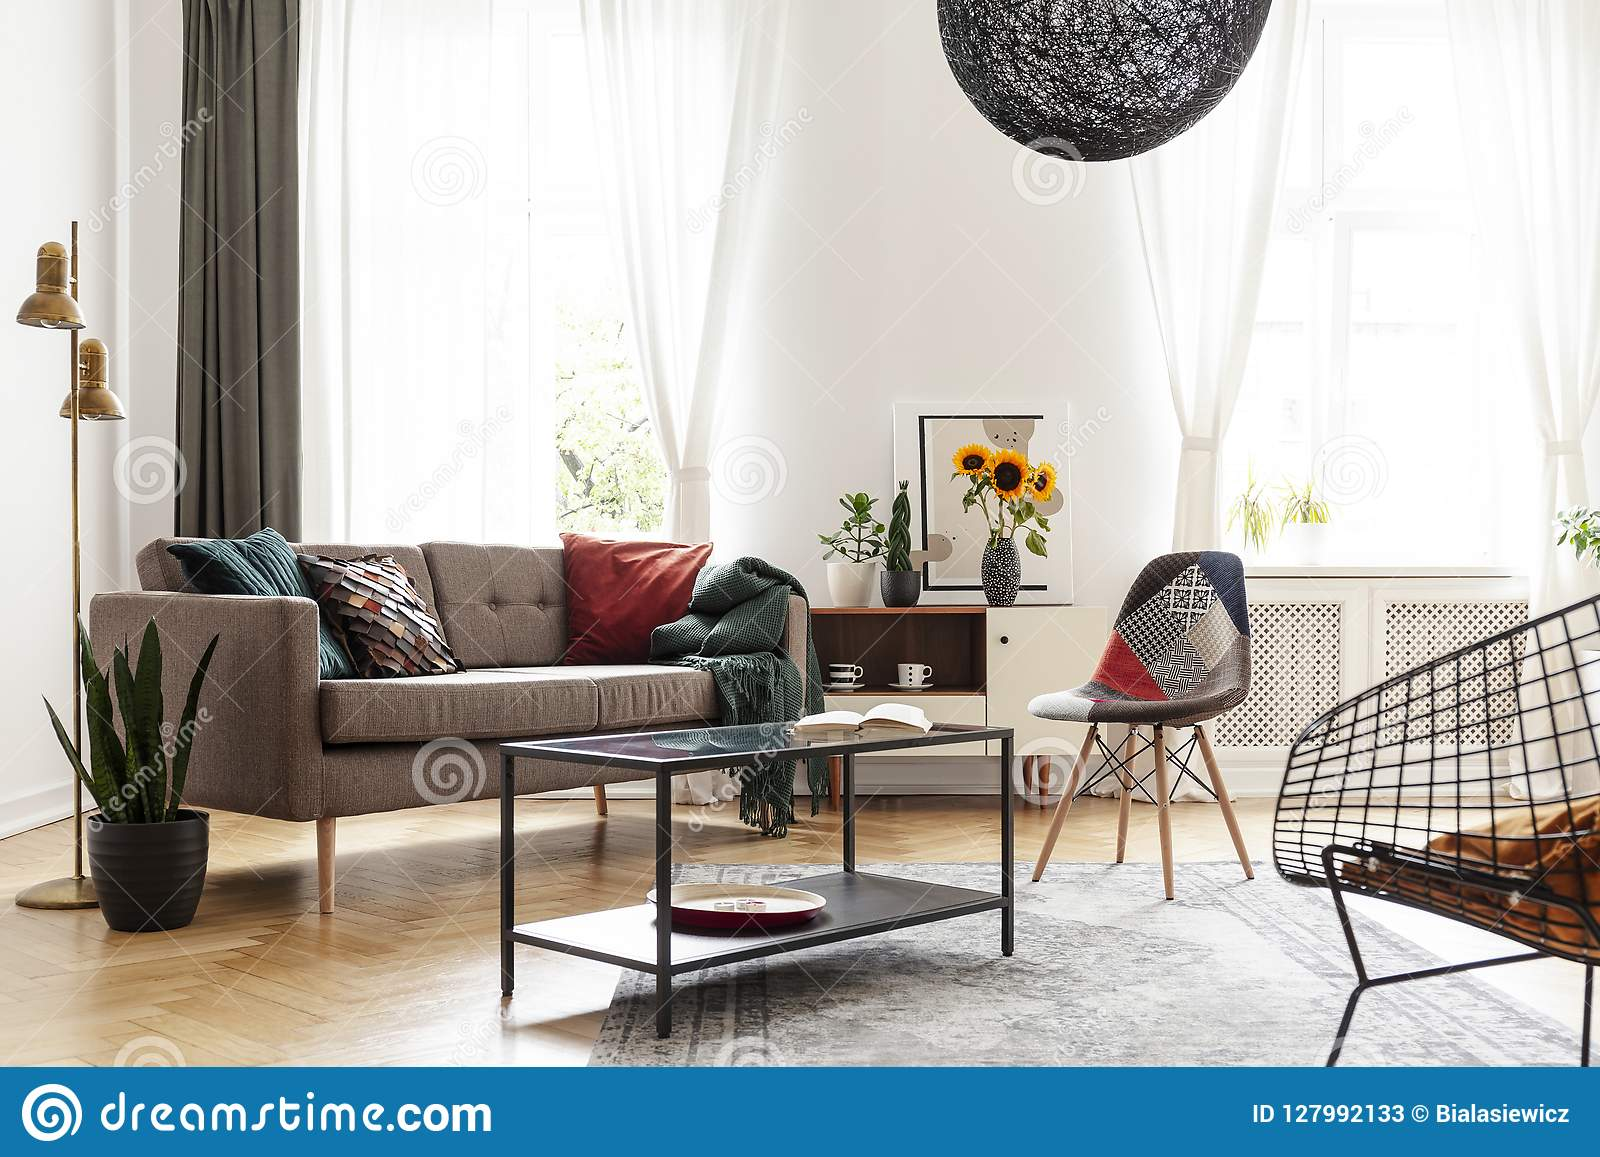 Peachy Simple Brown Sofa With Cushions In An Eclectic White Living Uwap Interior Chair Design Uwaporg